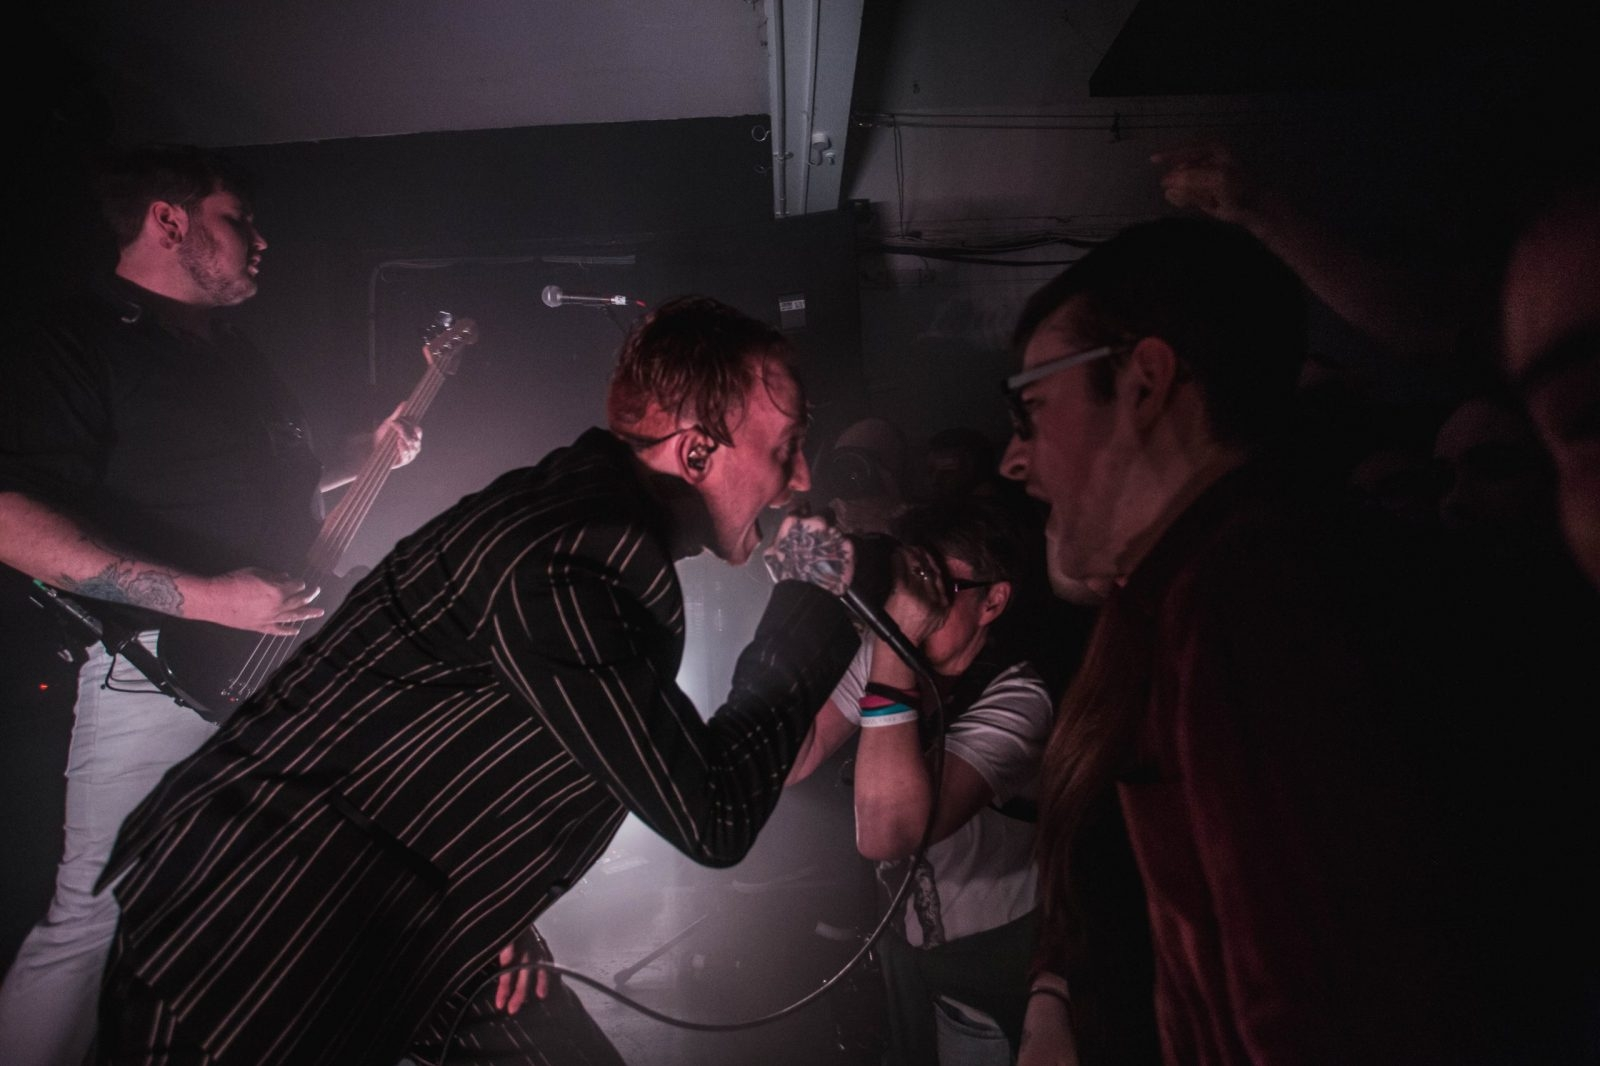 Frank Carter & The Rattlesnakes @ Oh Yeah Music Centre 8